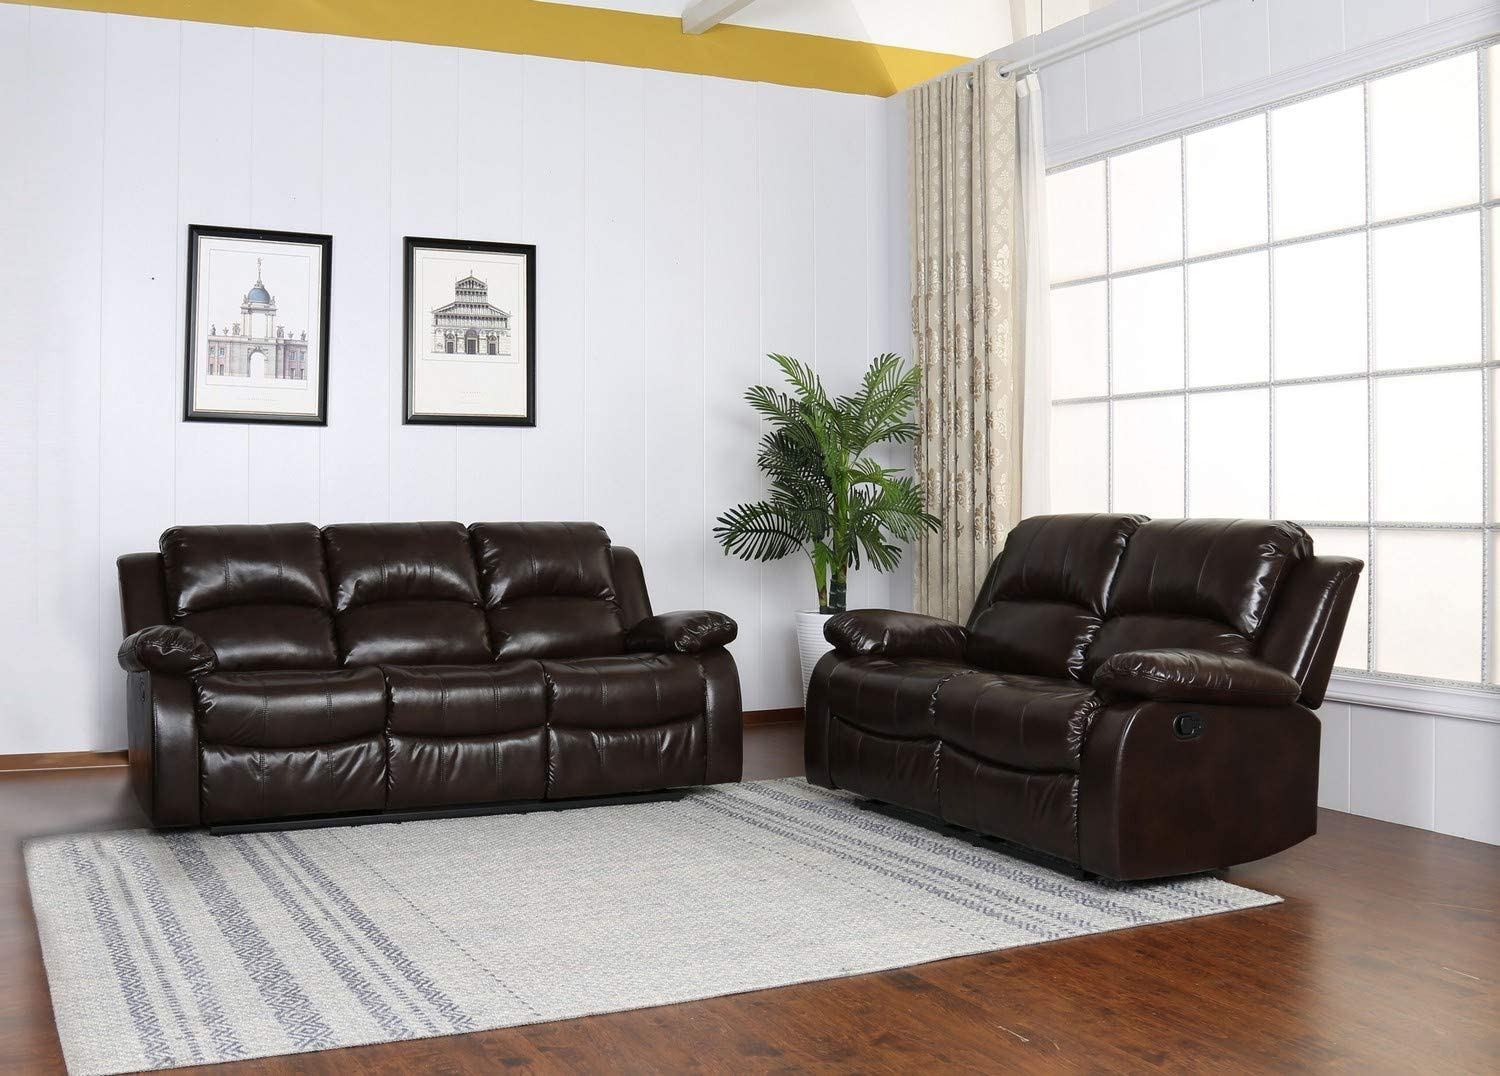 Amazon Com Blackjack Furniture 9393 Portico Collection Leather Air Mid Century Modern Living Room Reclining Loveseat Sofa Brown Furniture Decor